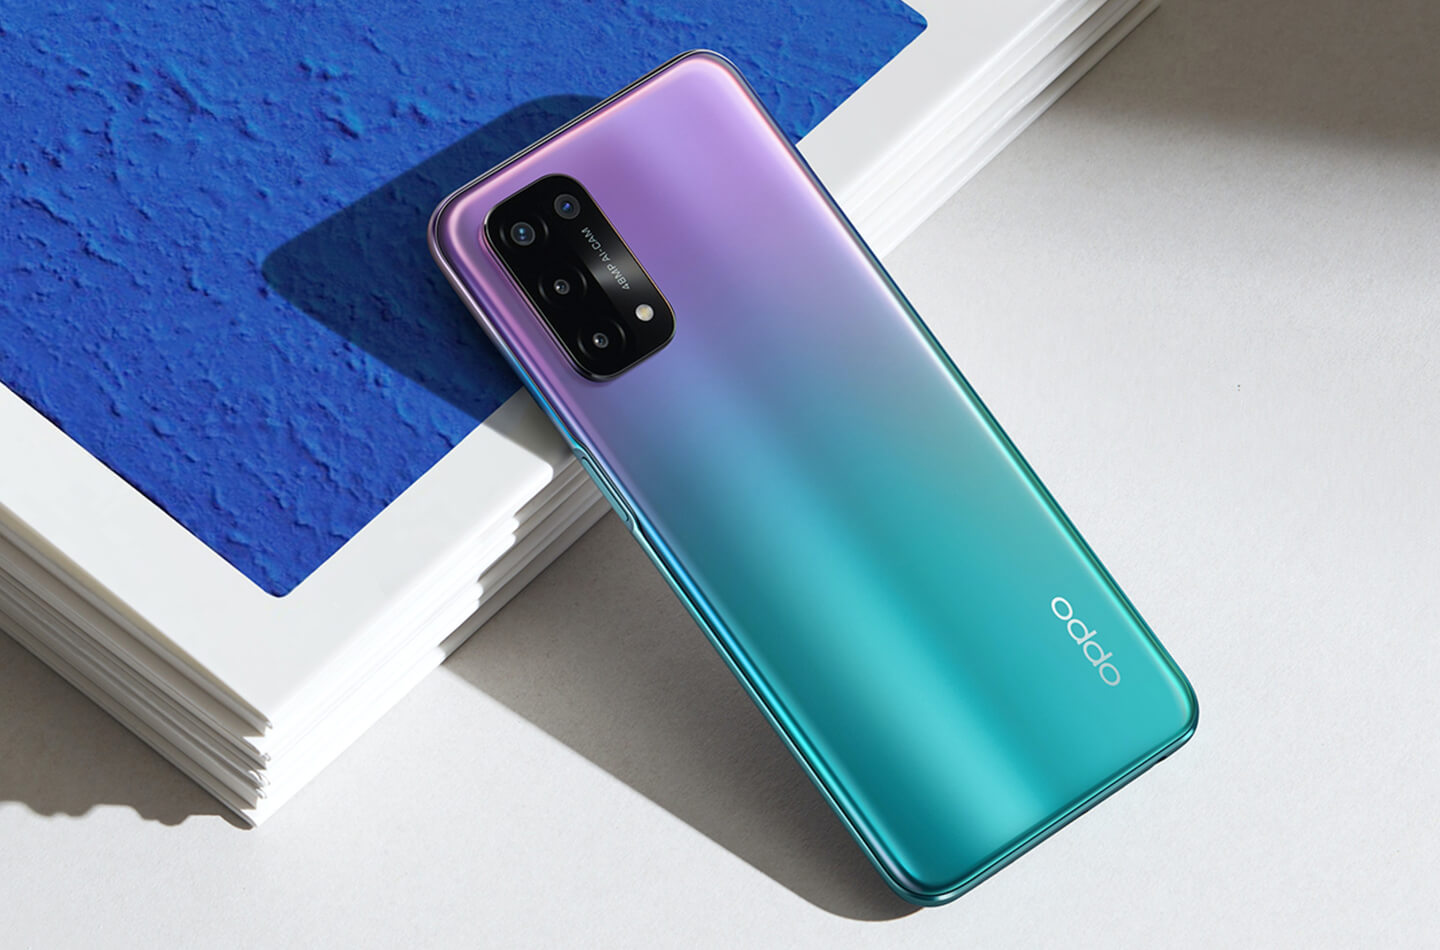 Oppo A54 5G smartphone